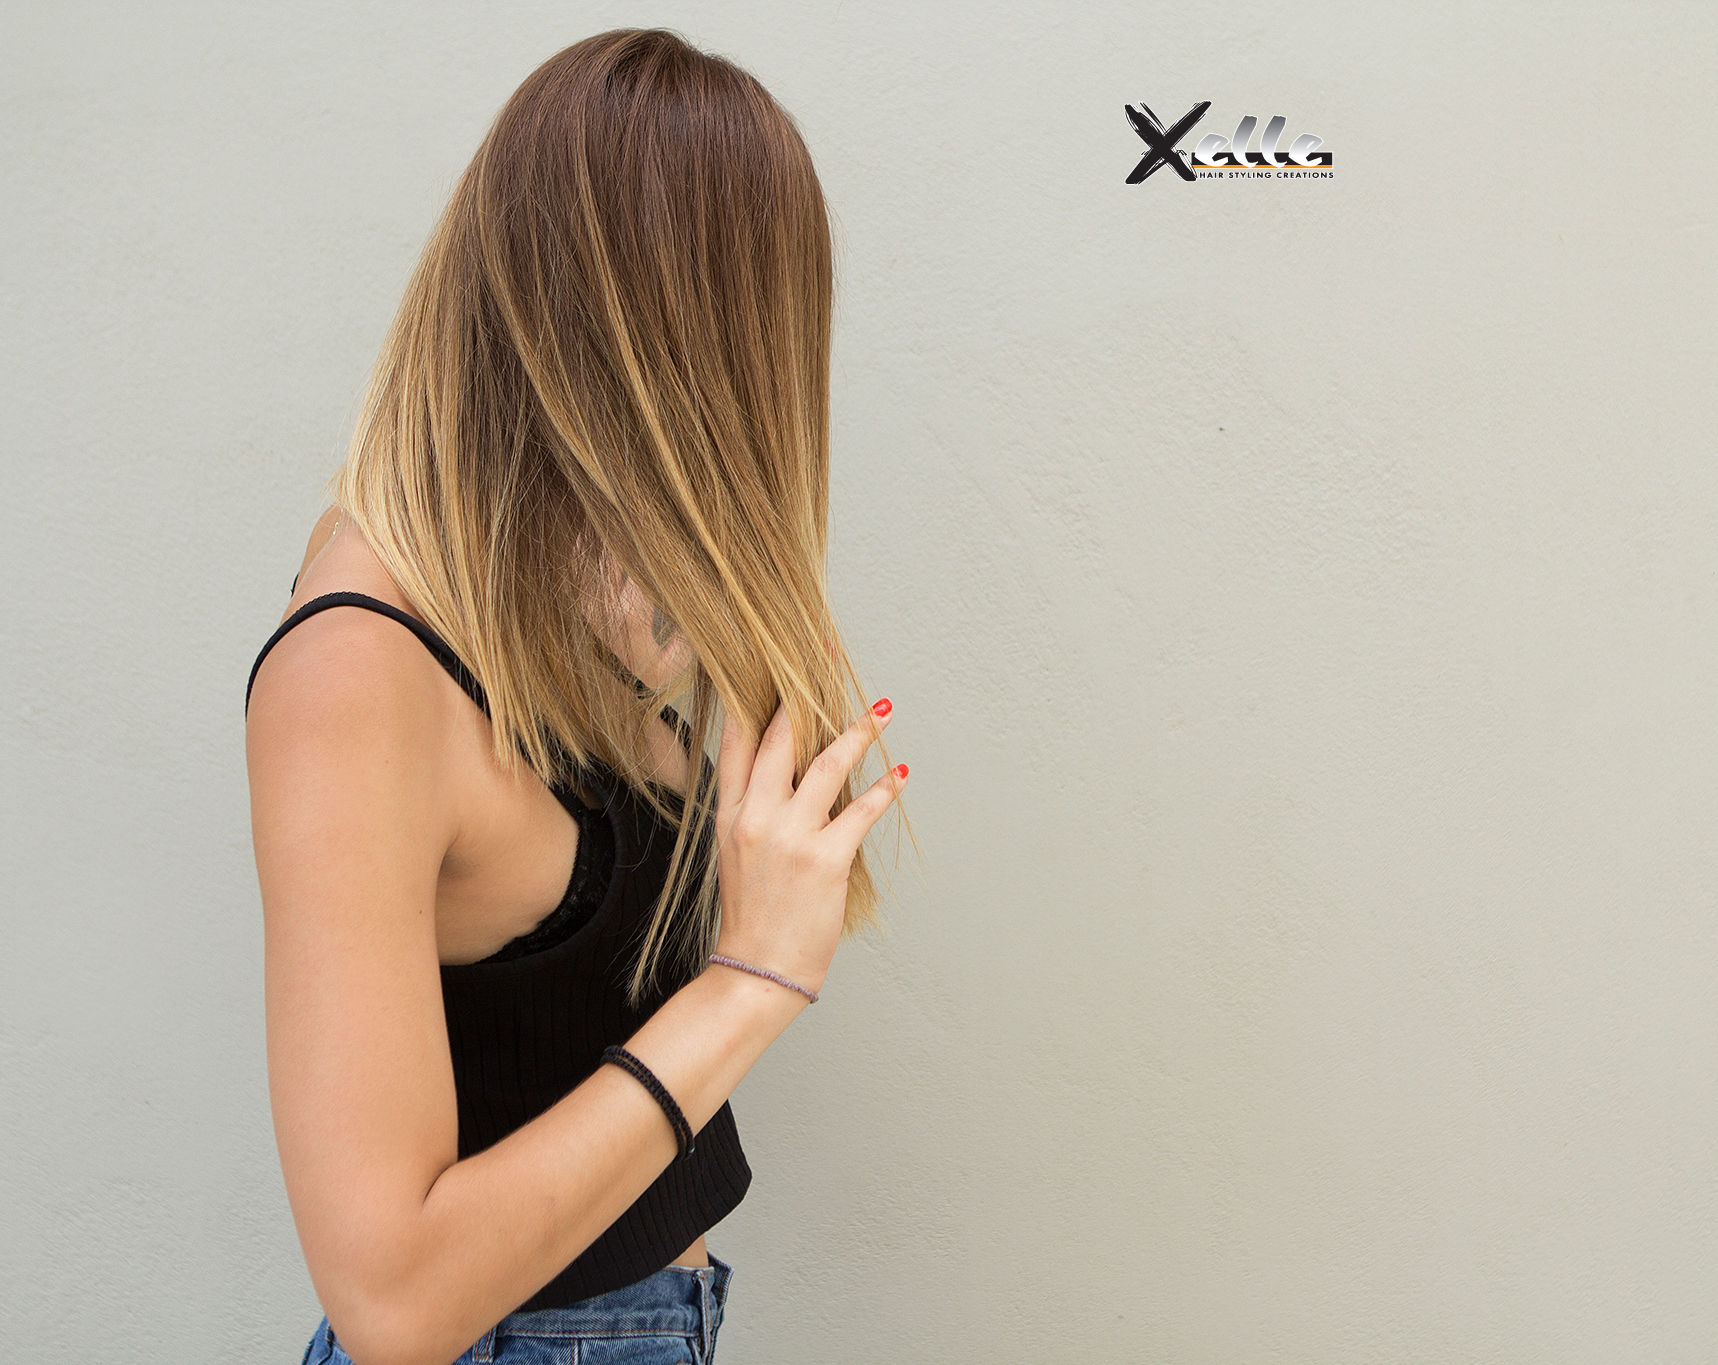 hairstyle_by_xelle-6